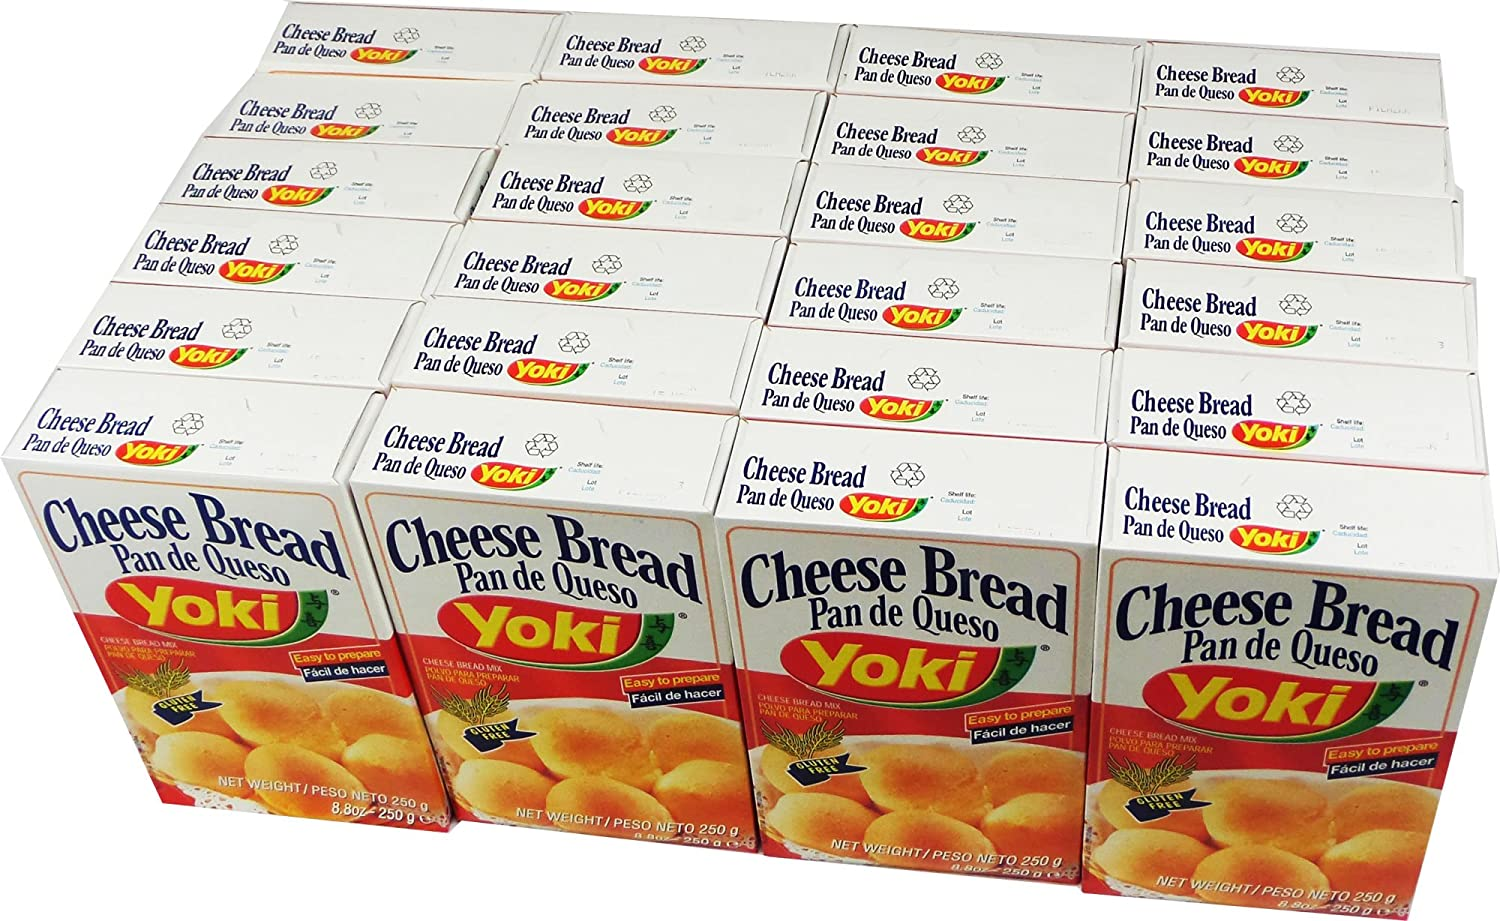 Amazon.com : Cheese Bread Mix - Mistura para Pão de Queijo - Yoki - 8.80 oz (250g) - GLUTEN-FREE - (PACK OF 24) : Grocery & Gourmet Food